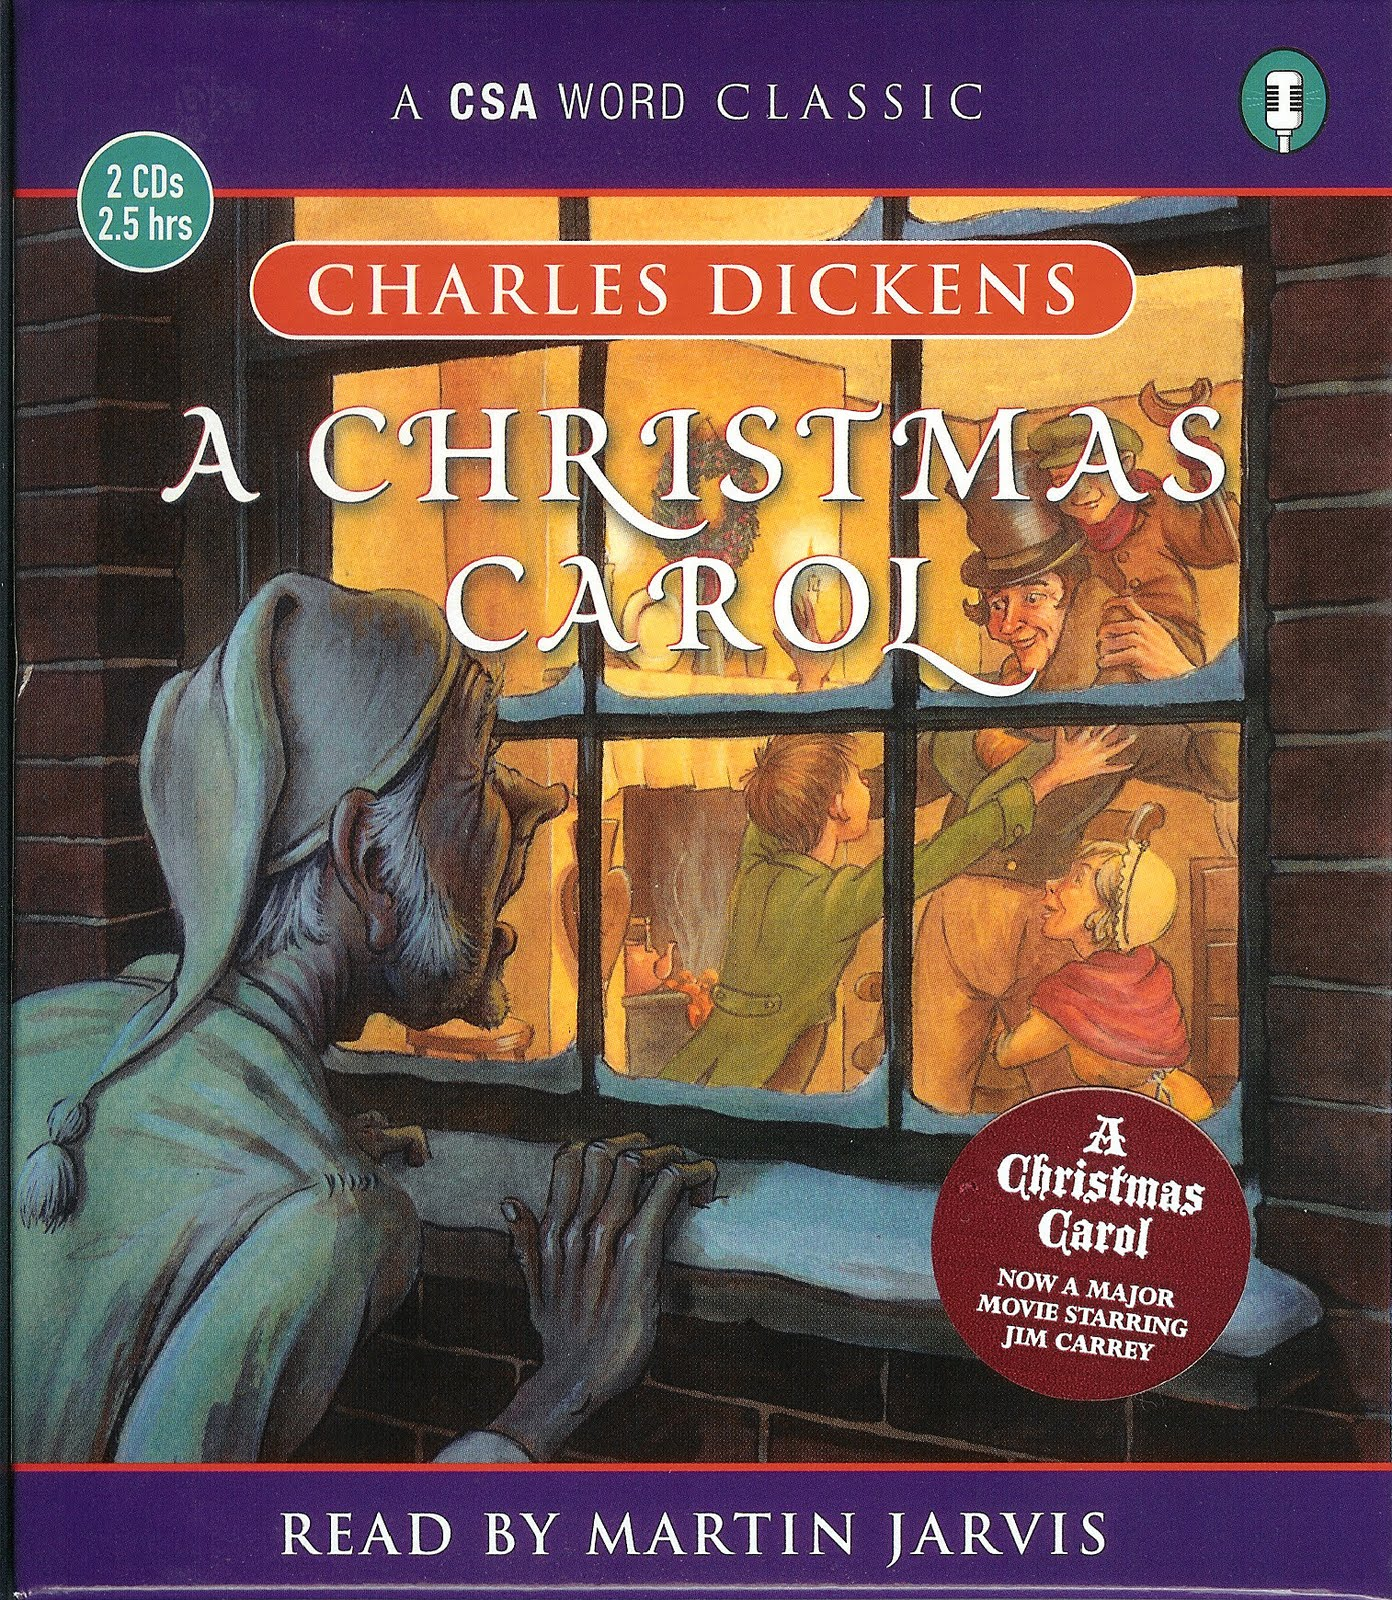 AudioBooksReview: A Christmas Carol by Charles Dickens